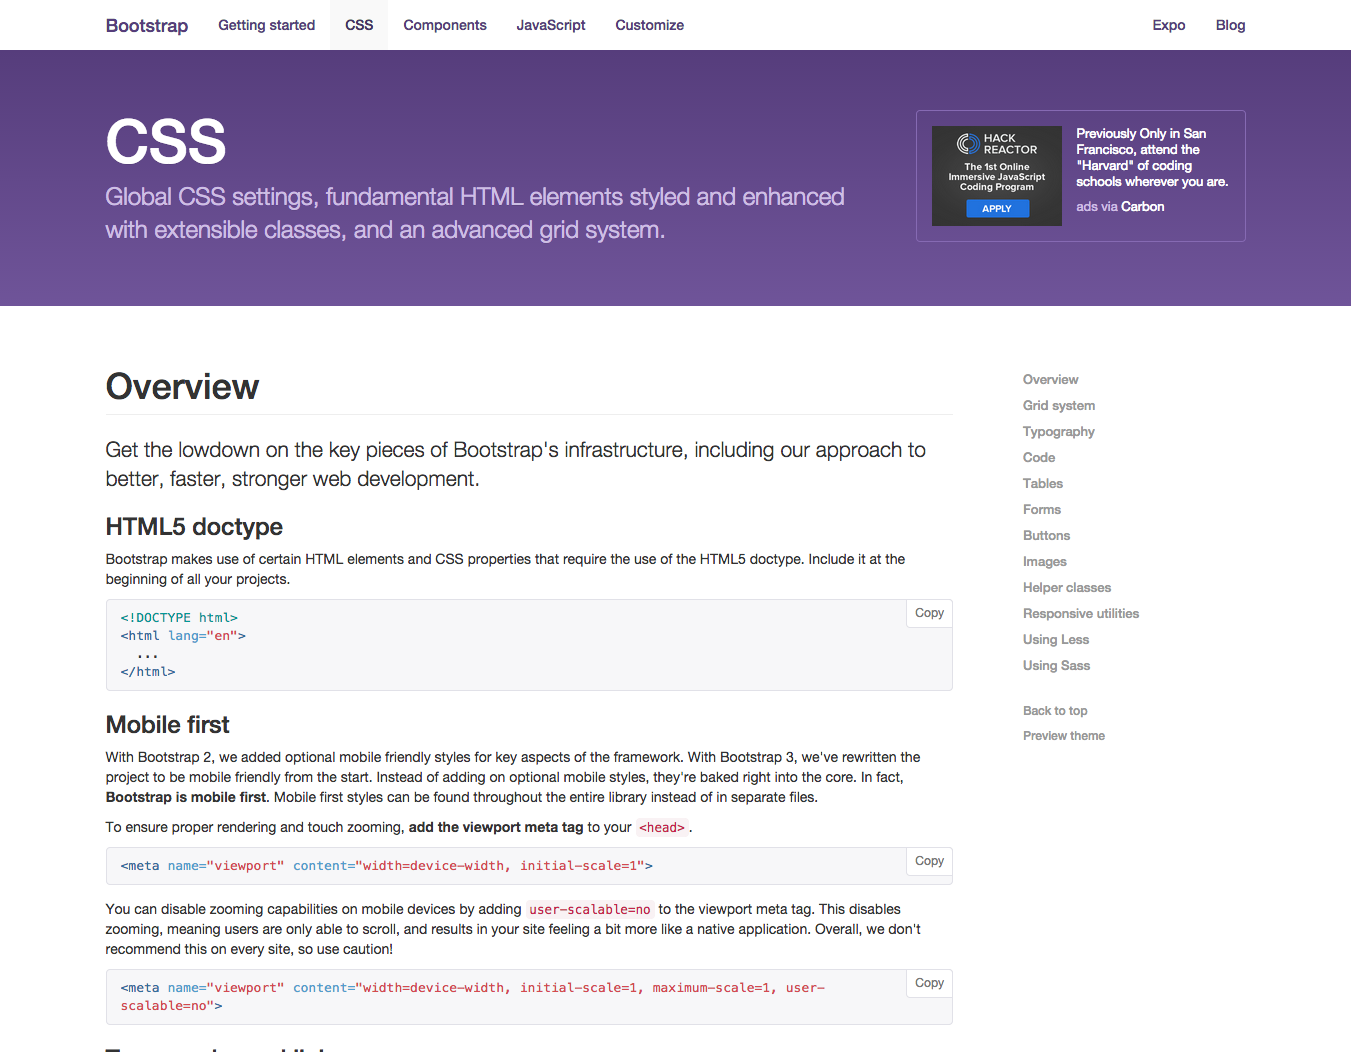 bootstrap-guidelines   web-crunch.com